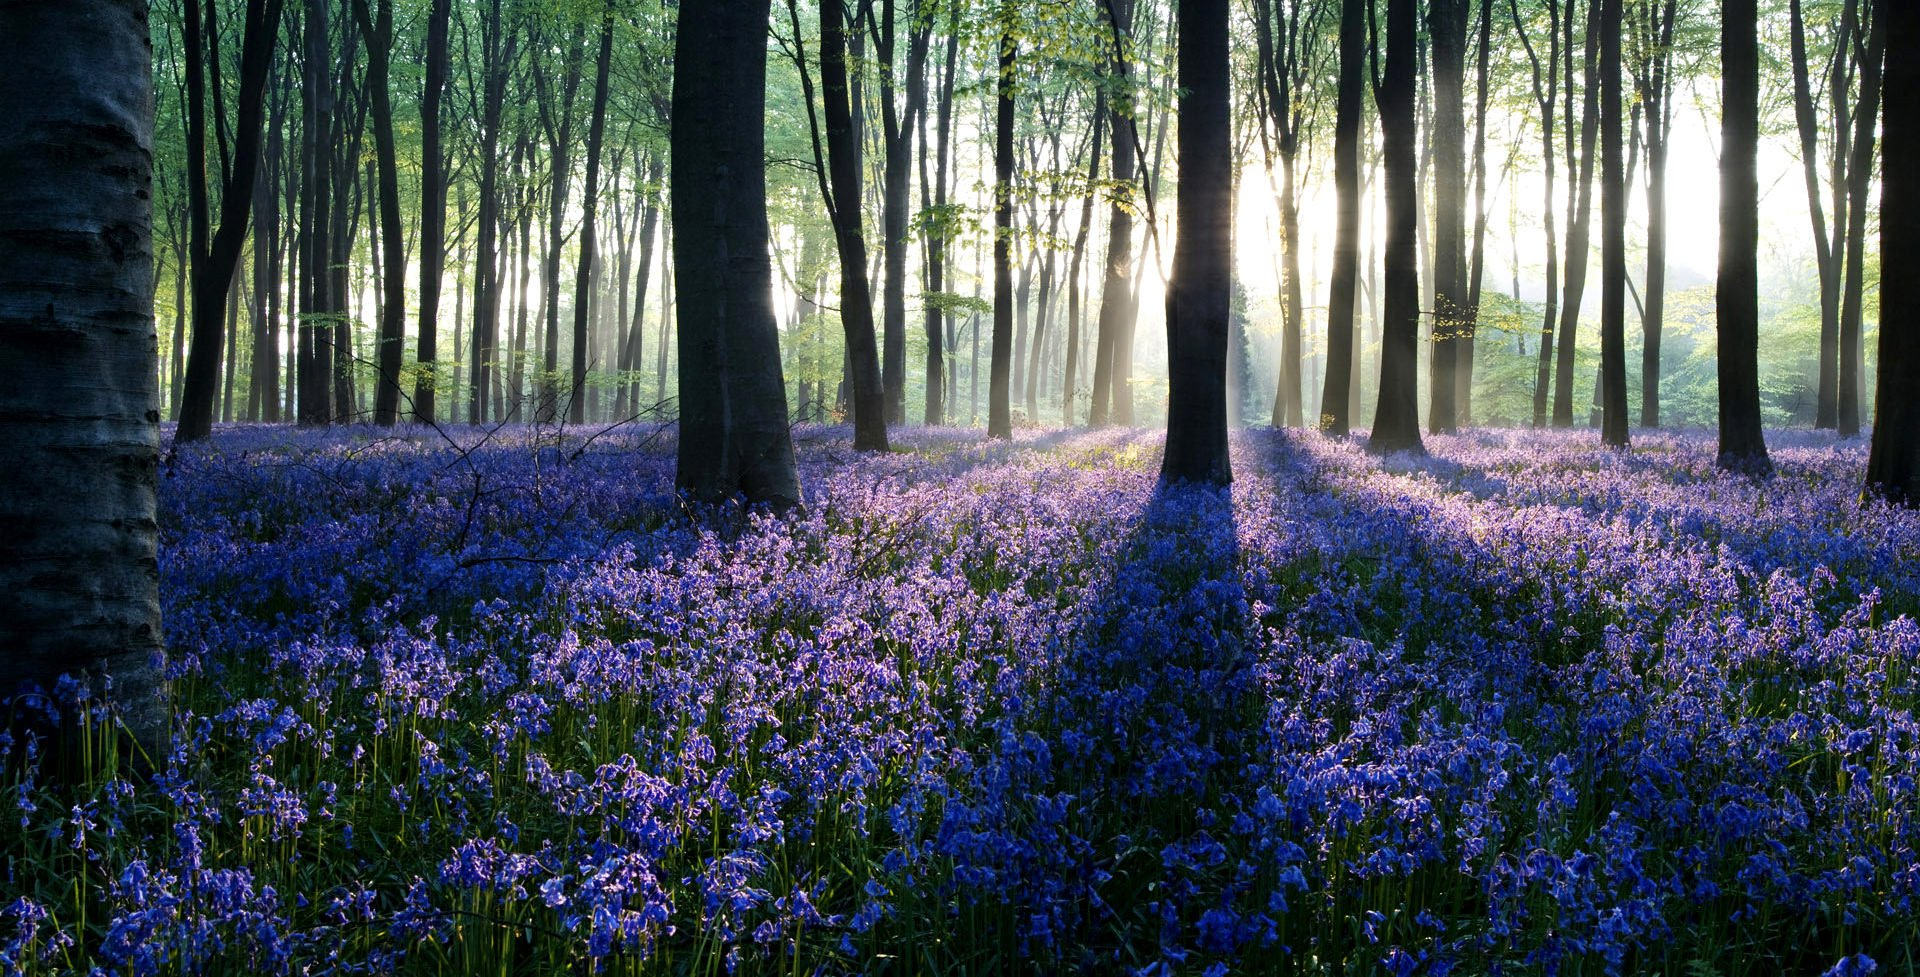 bluebells-wallpaper-18